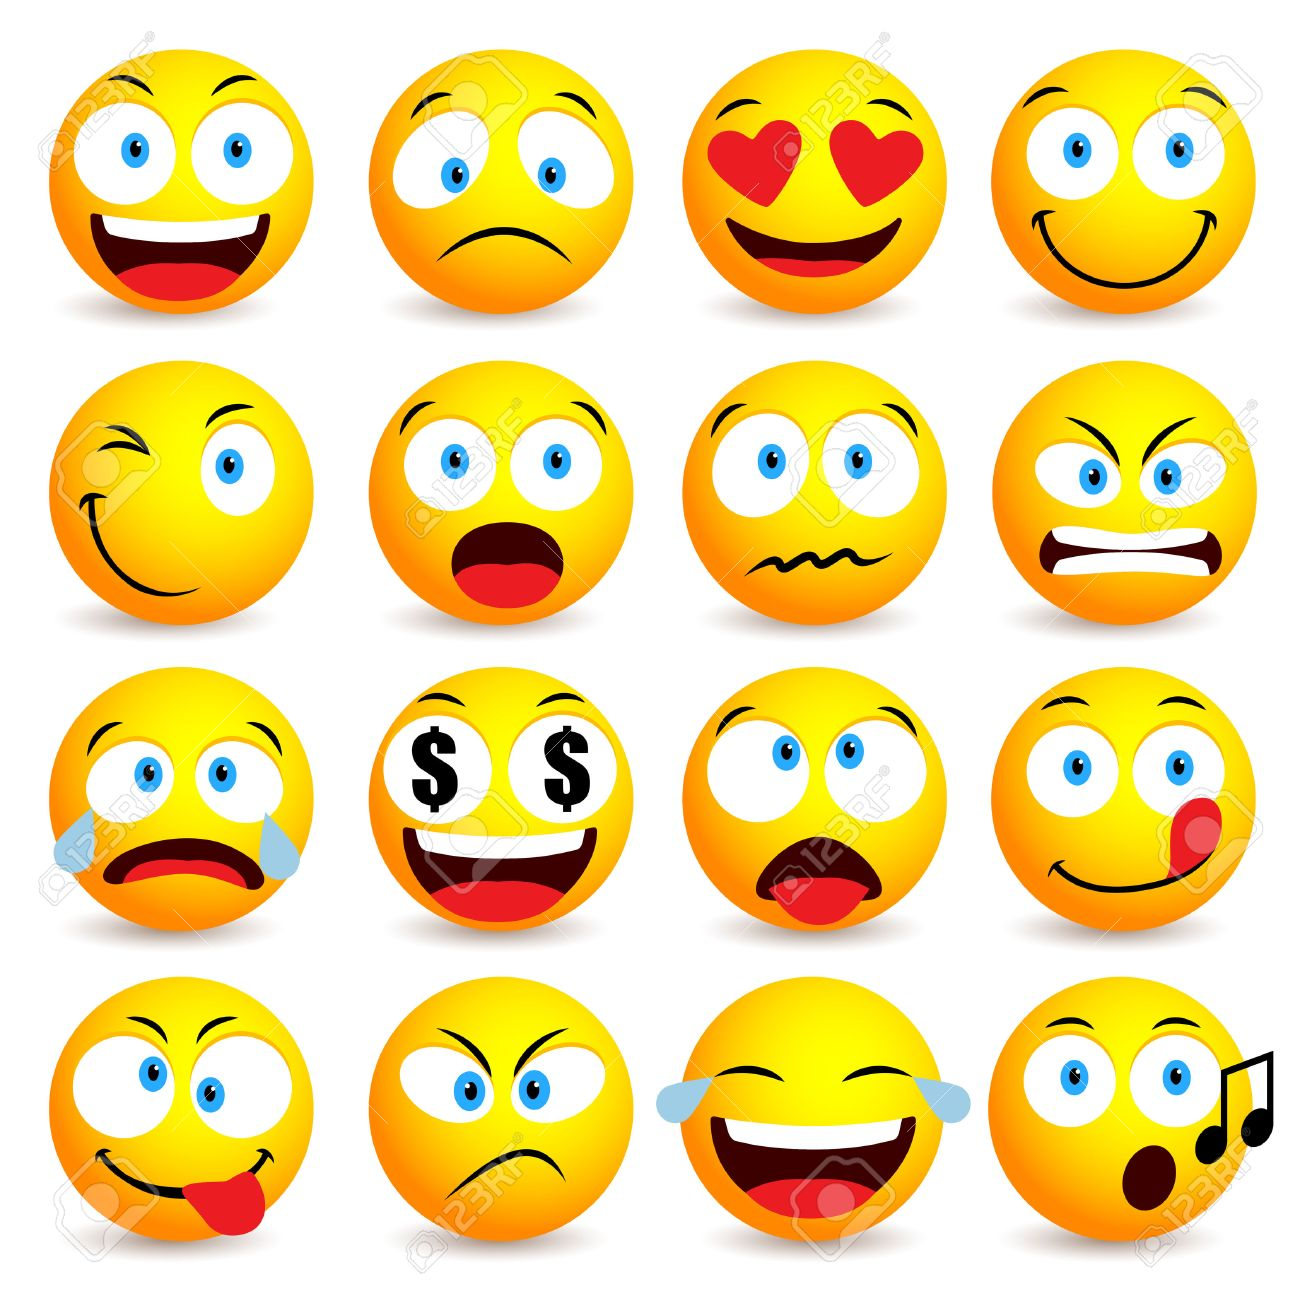 Smiley face and emoticon simple set with facial expressions isolated in white background. Vector illustration - 57112986